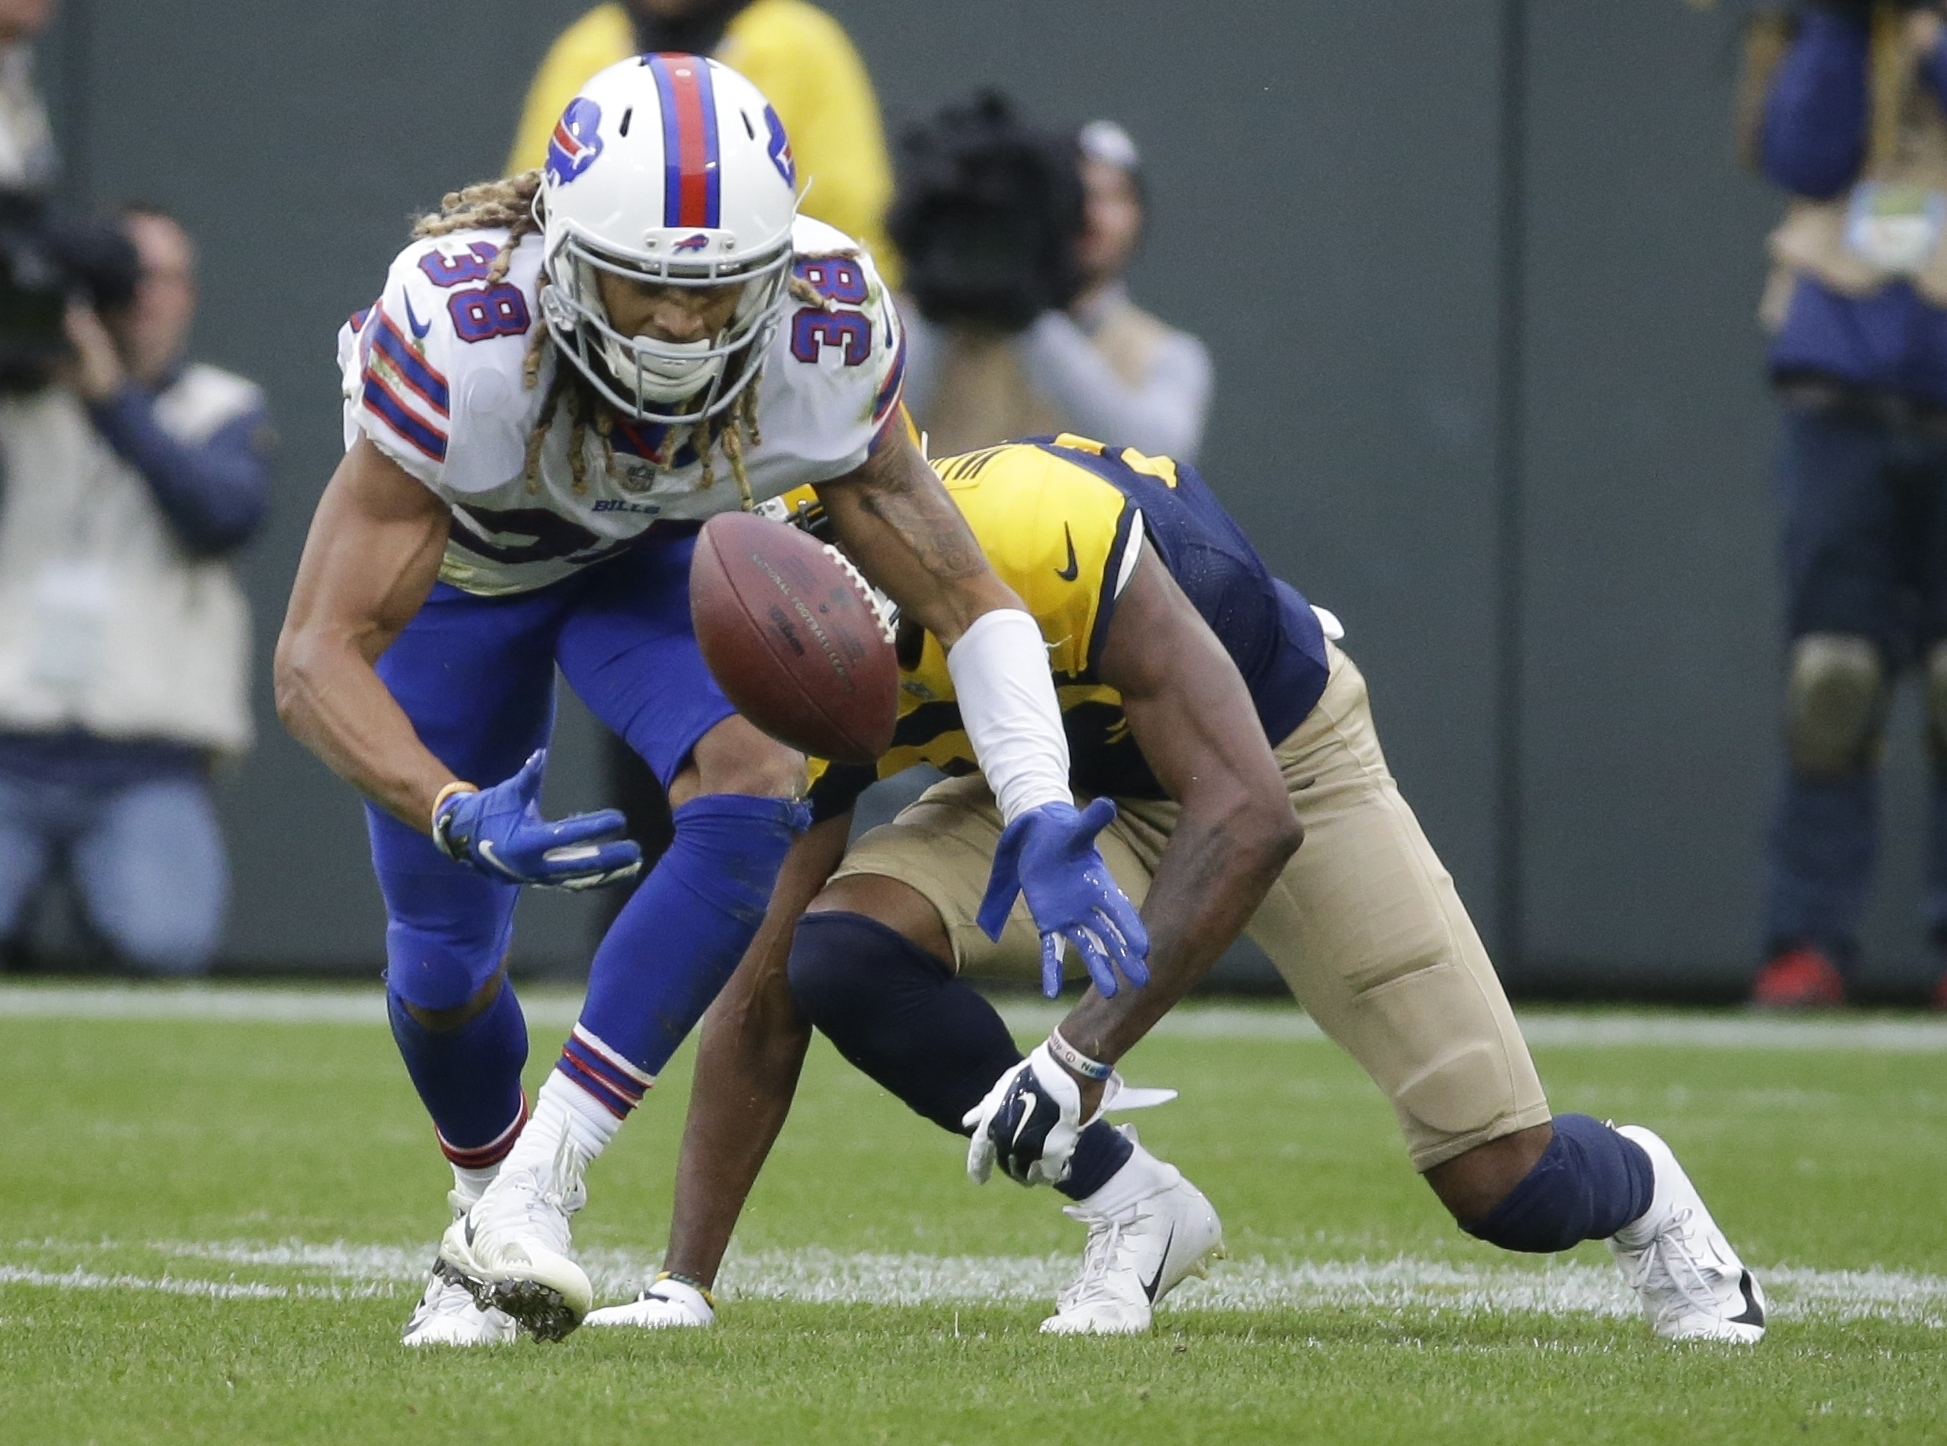 Buffalo Bills' Ryan Lewis breaks up a pass intended for Green Bay Packers' Marquez Valdes-Scantling during the second half of an NFL football game Sunday, Sept. 30, 2018, in Green Bay, Wis. (AP Photo/Mike Roemer)